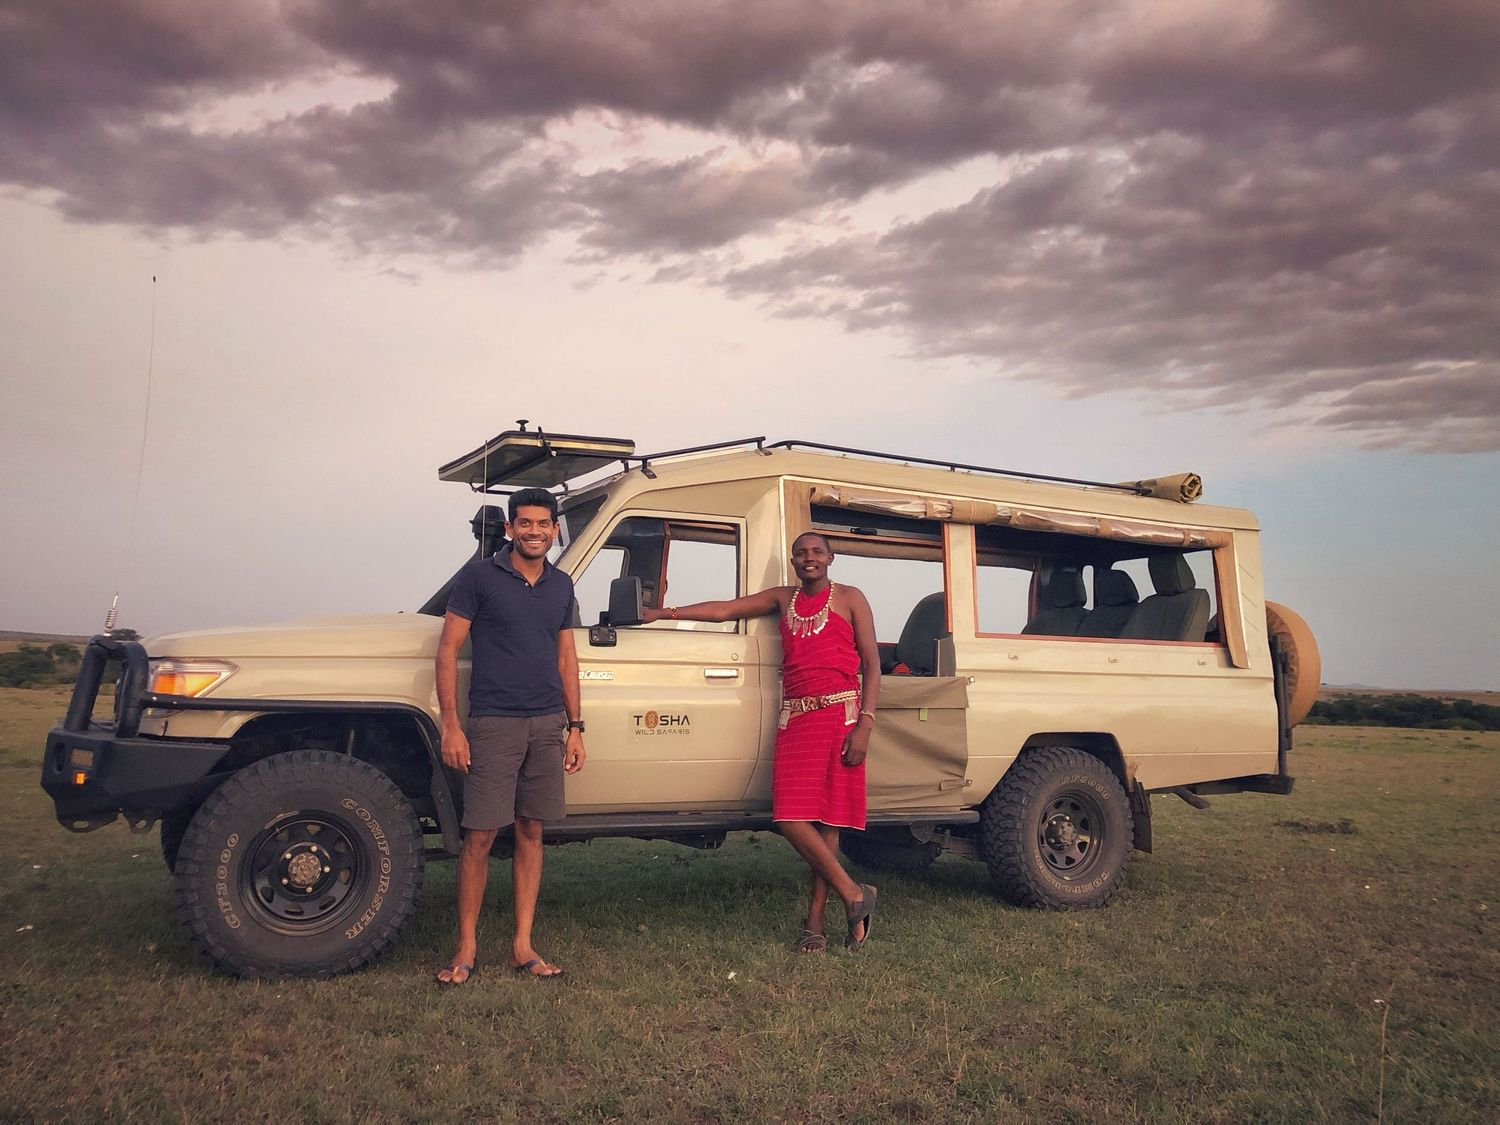 our safari car with the Drivers and Guides in Masai Mara